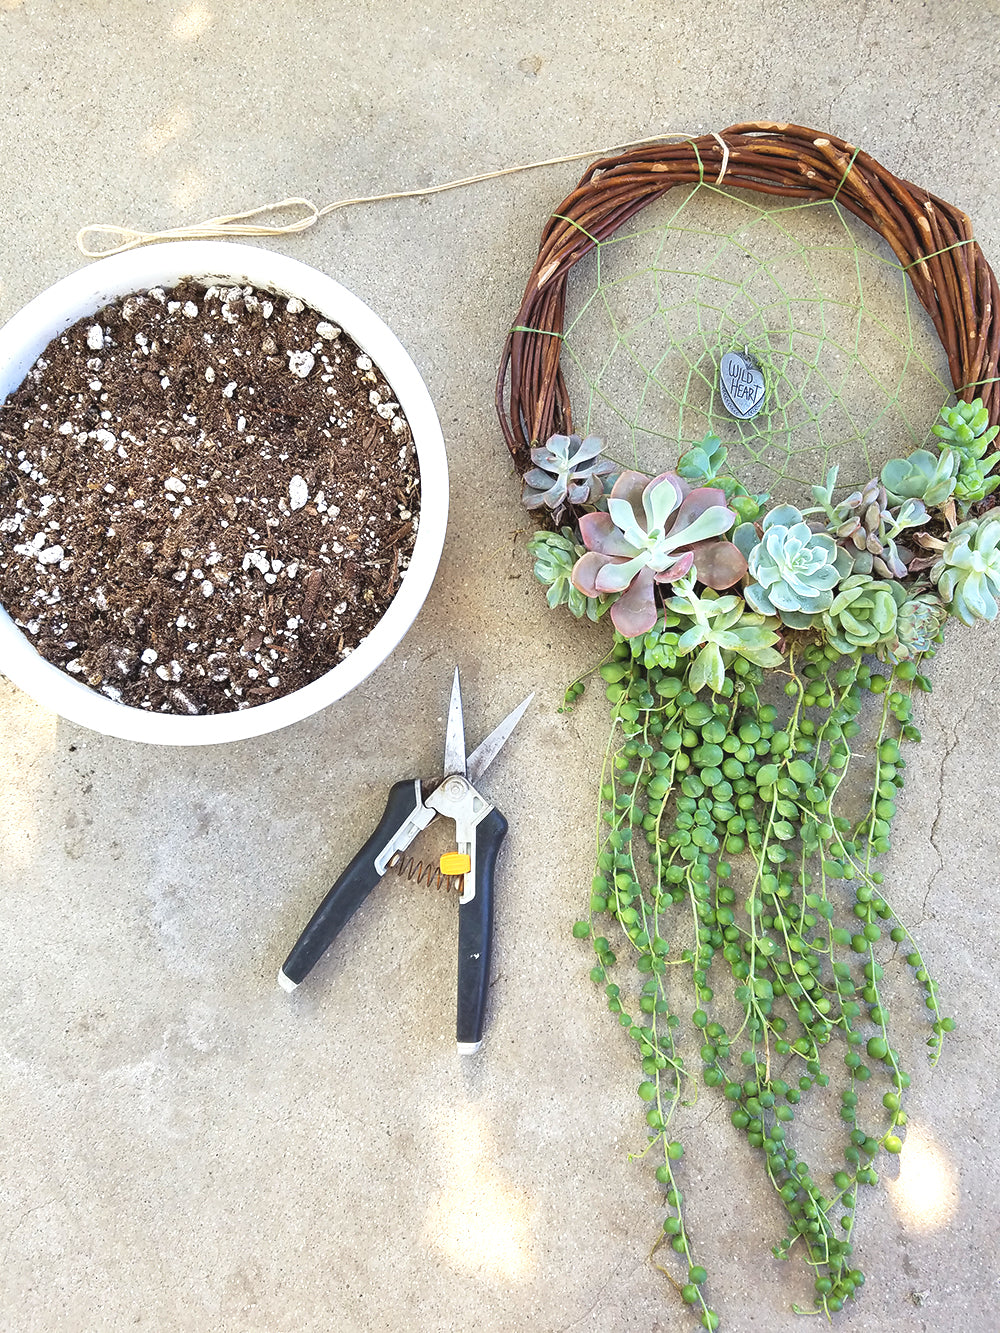 Taking Apart Your Living Succulent Dreamcatcher Botanical Bright